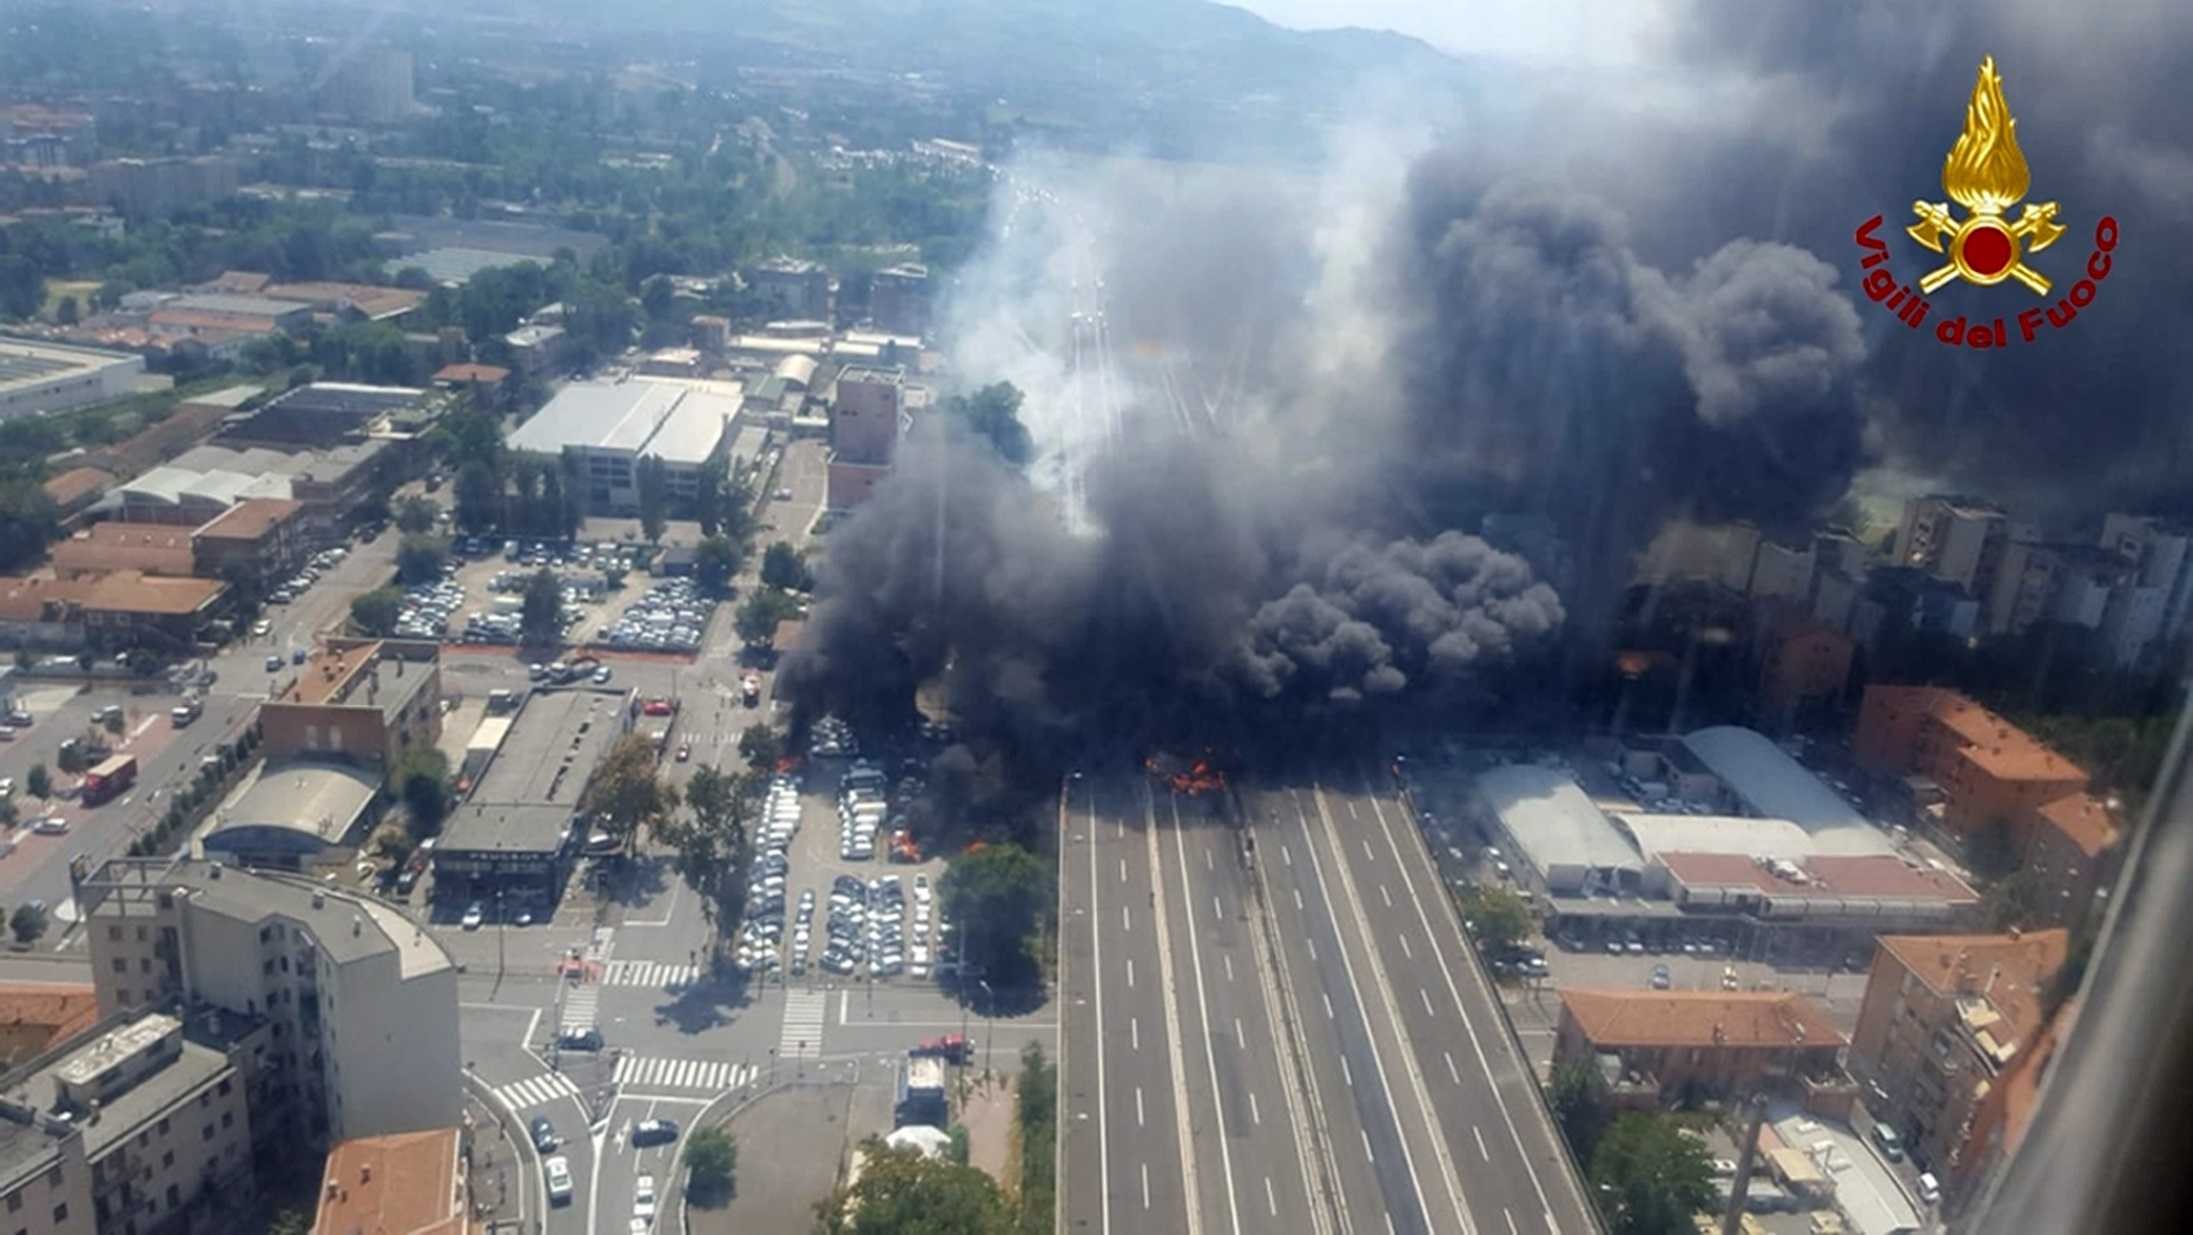 In this photo released by the Italian firefighters, an helicopter view of the explosion on a highway in the outskirts of Bologna, Italy, Monday, Aug. 6, 2018. The explosion was reportedly caused by an accident involving a truck that was transporting flammable substances and exploded upon impact.